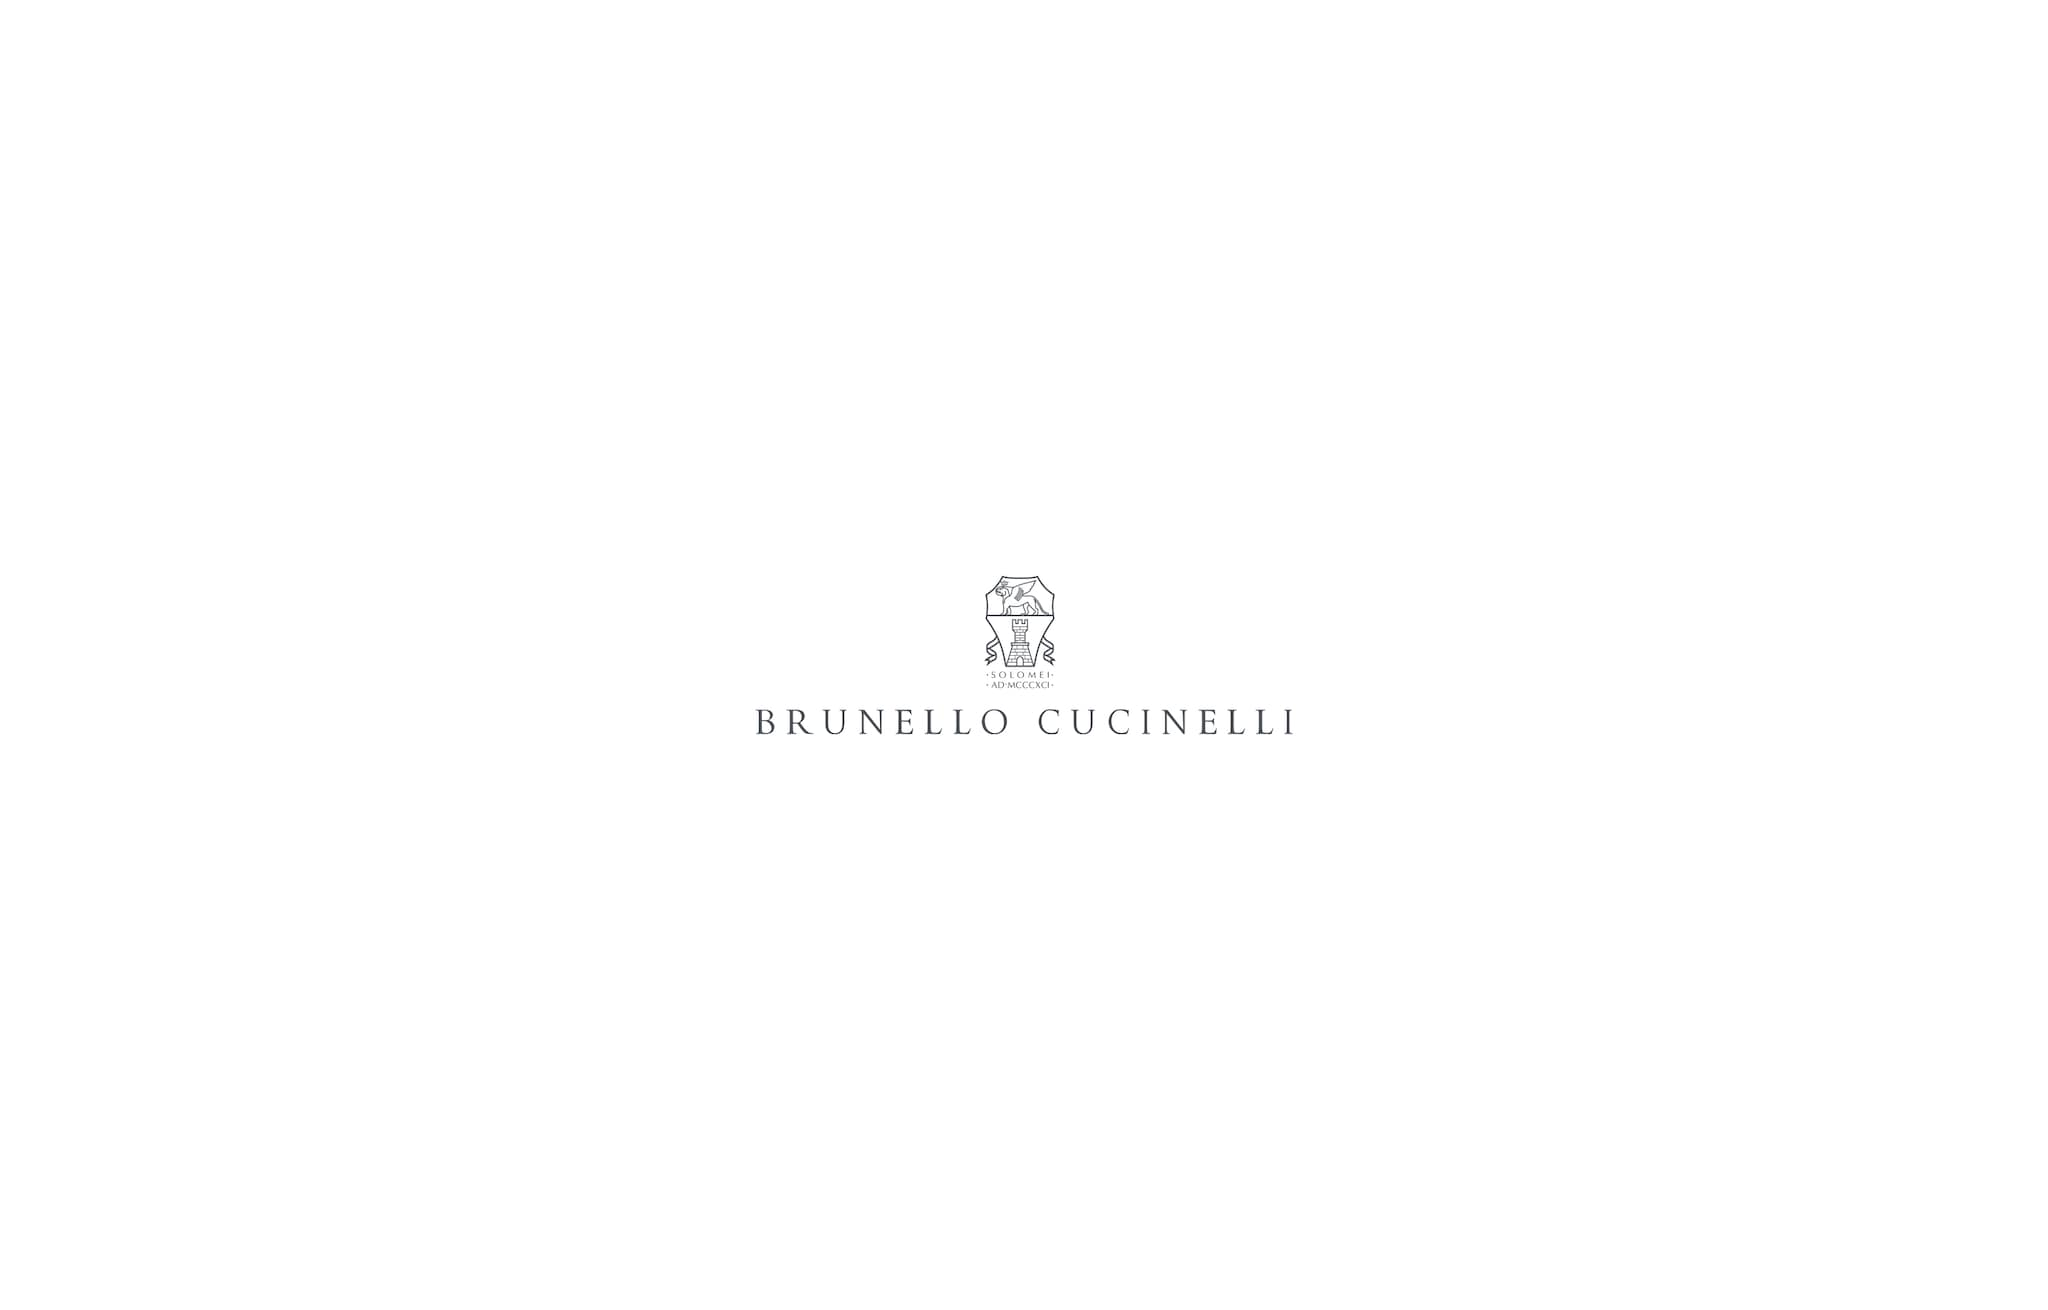 202HOUTFIT8 null null - Brunello Cucinelli